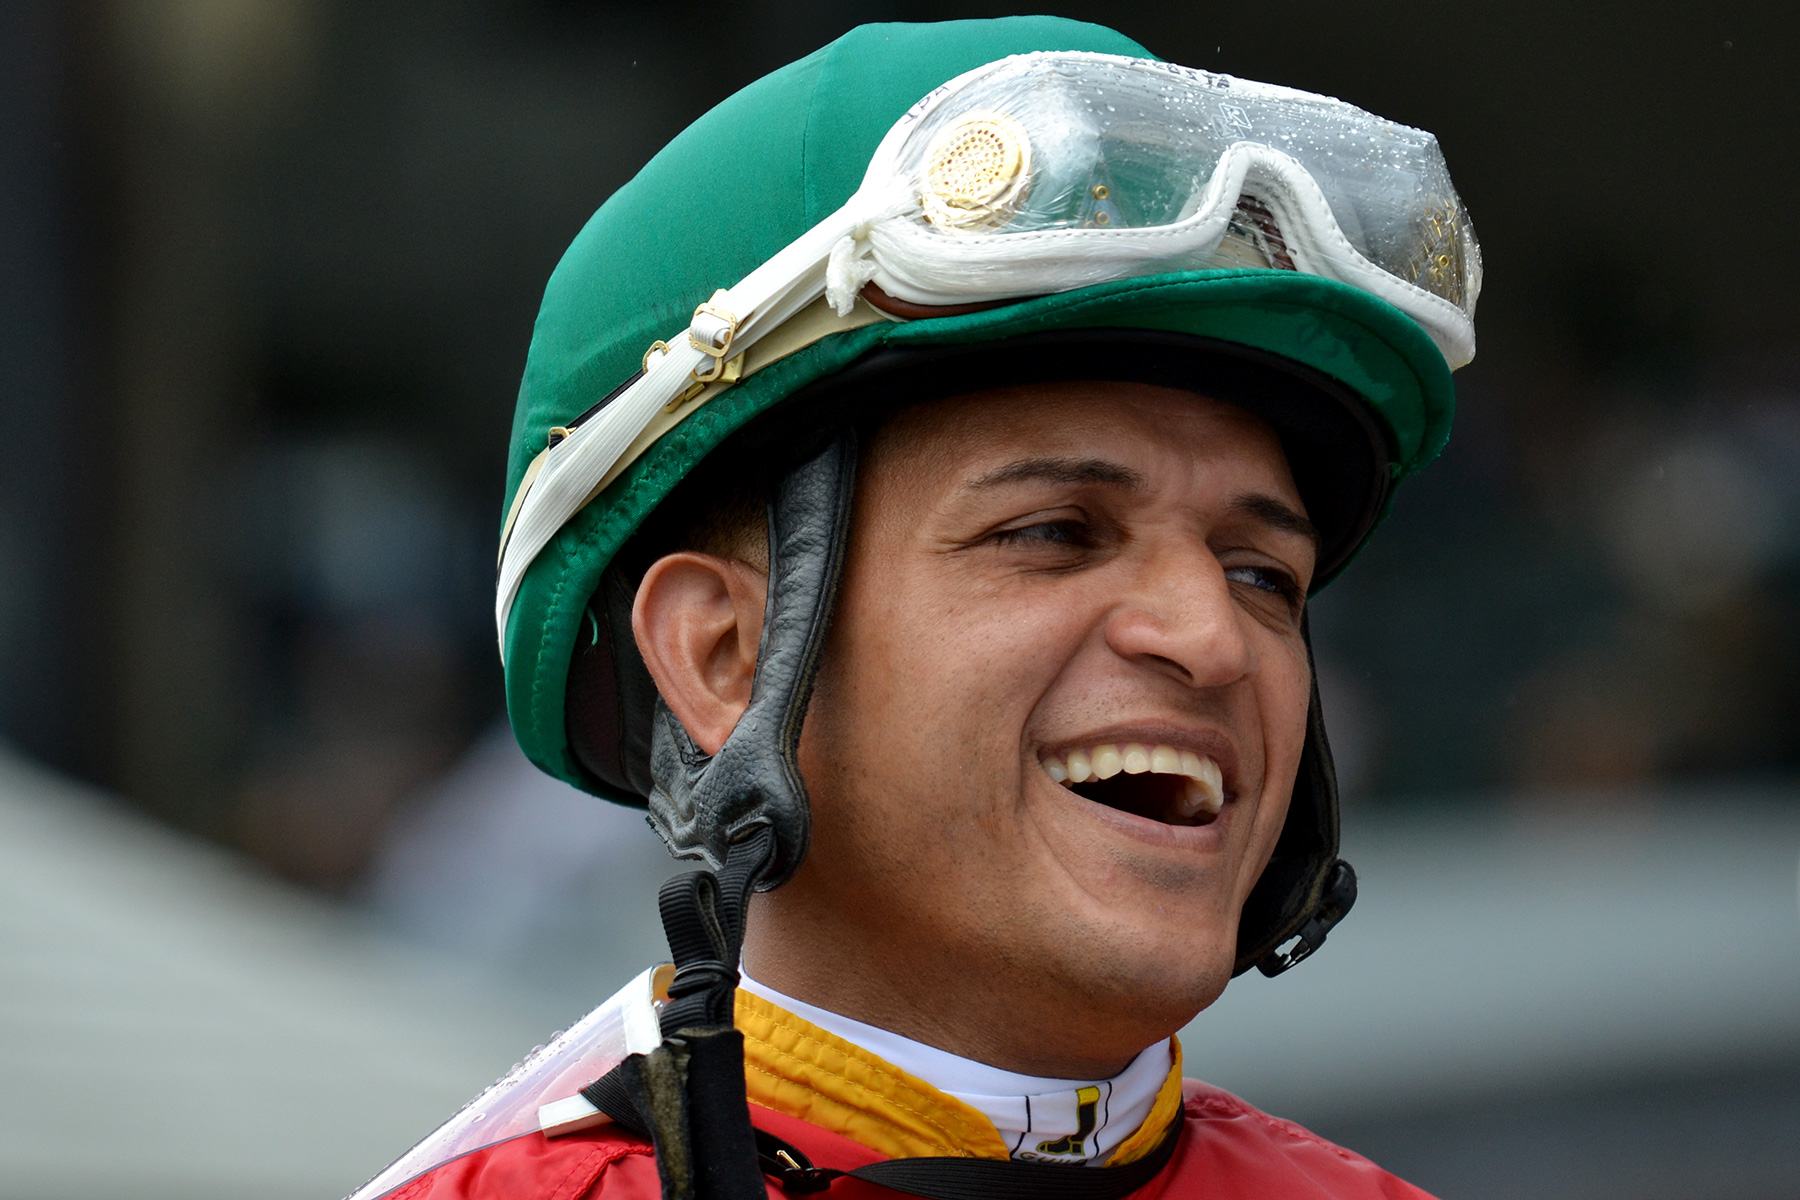 Jockey J.D. Acosta in the paddock at Suffolk Downs